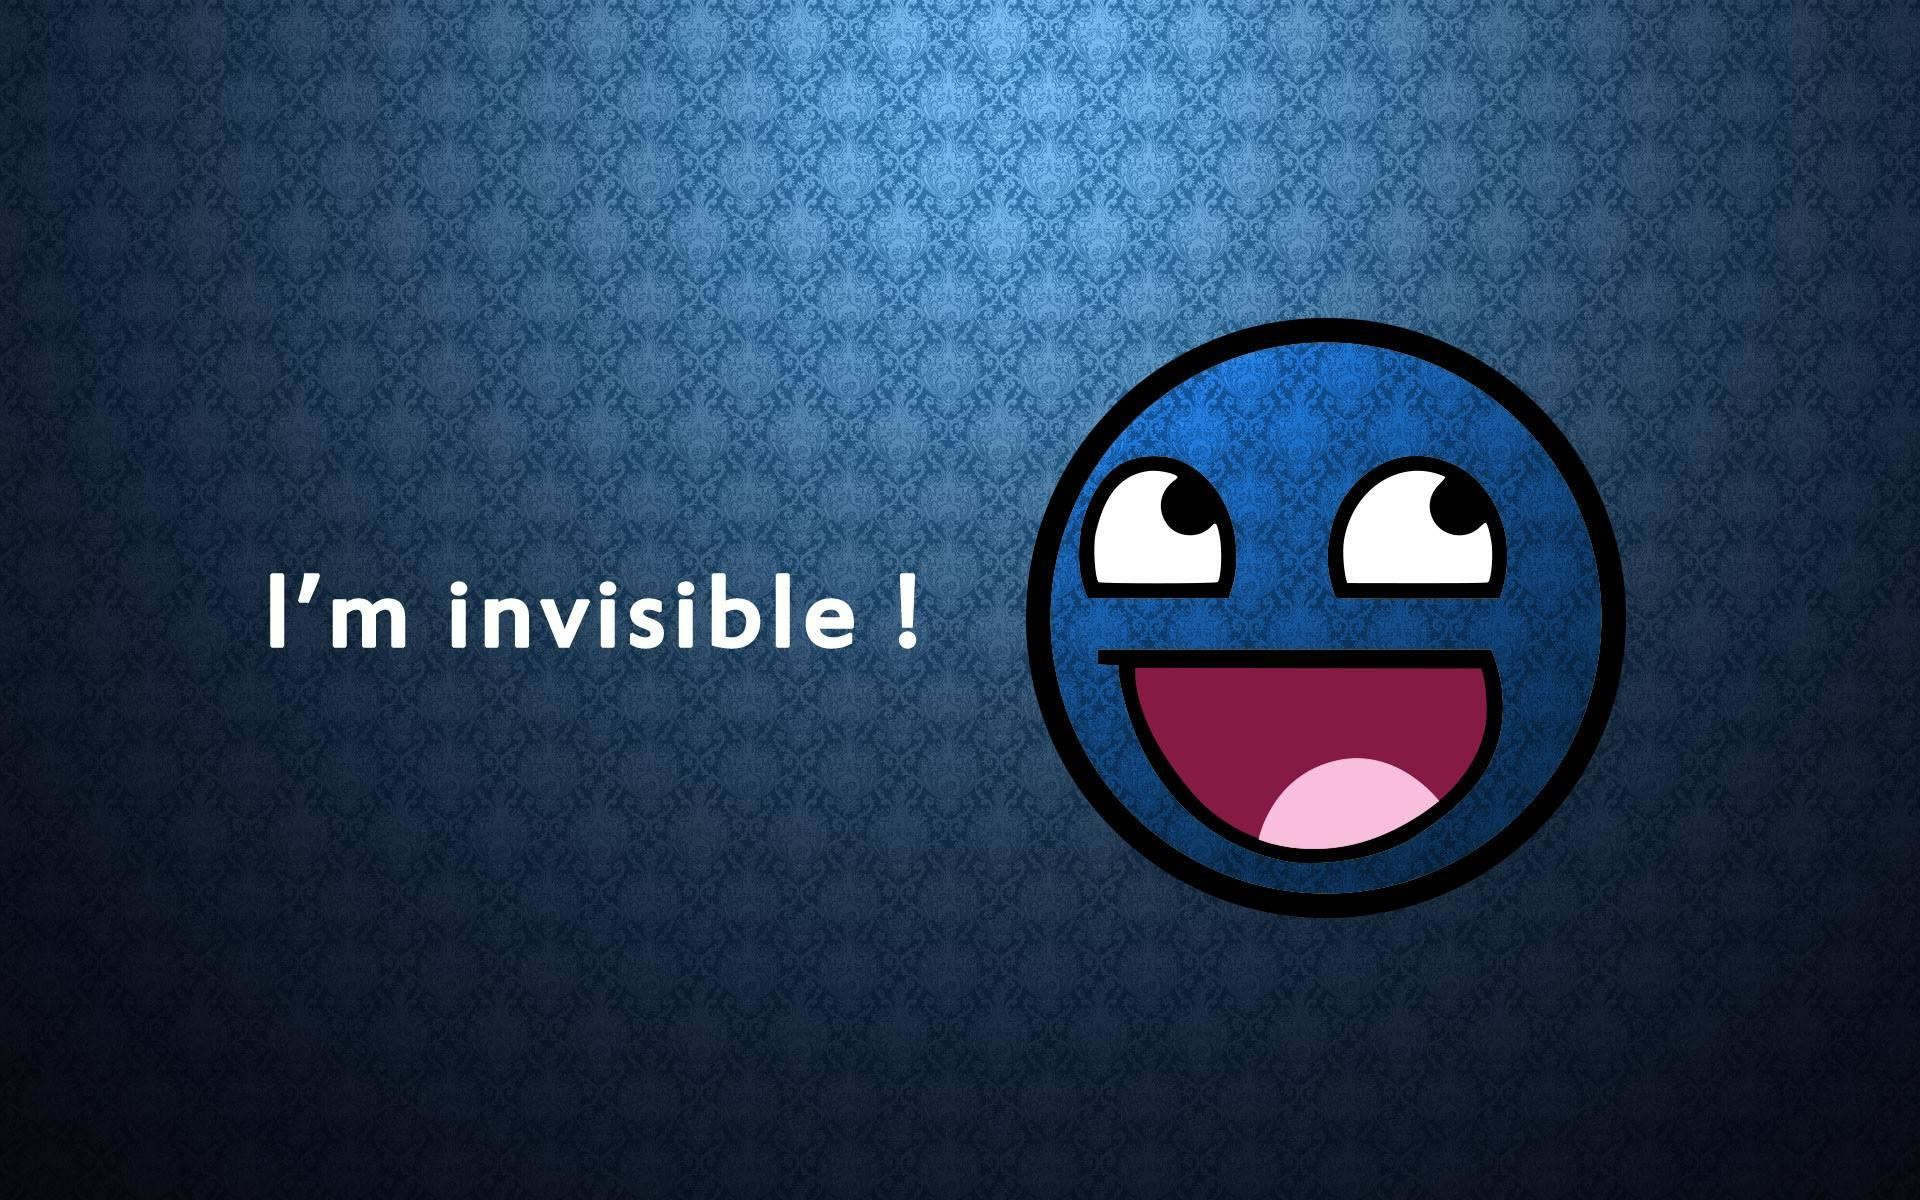 Awesome Smiley Face Wallpaper 63 Images